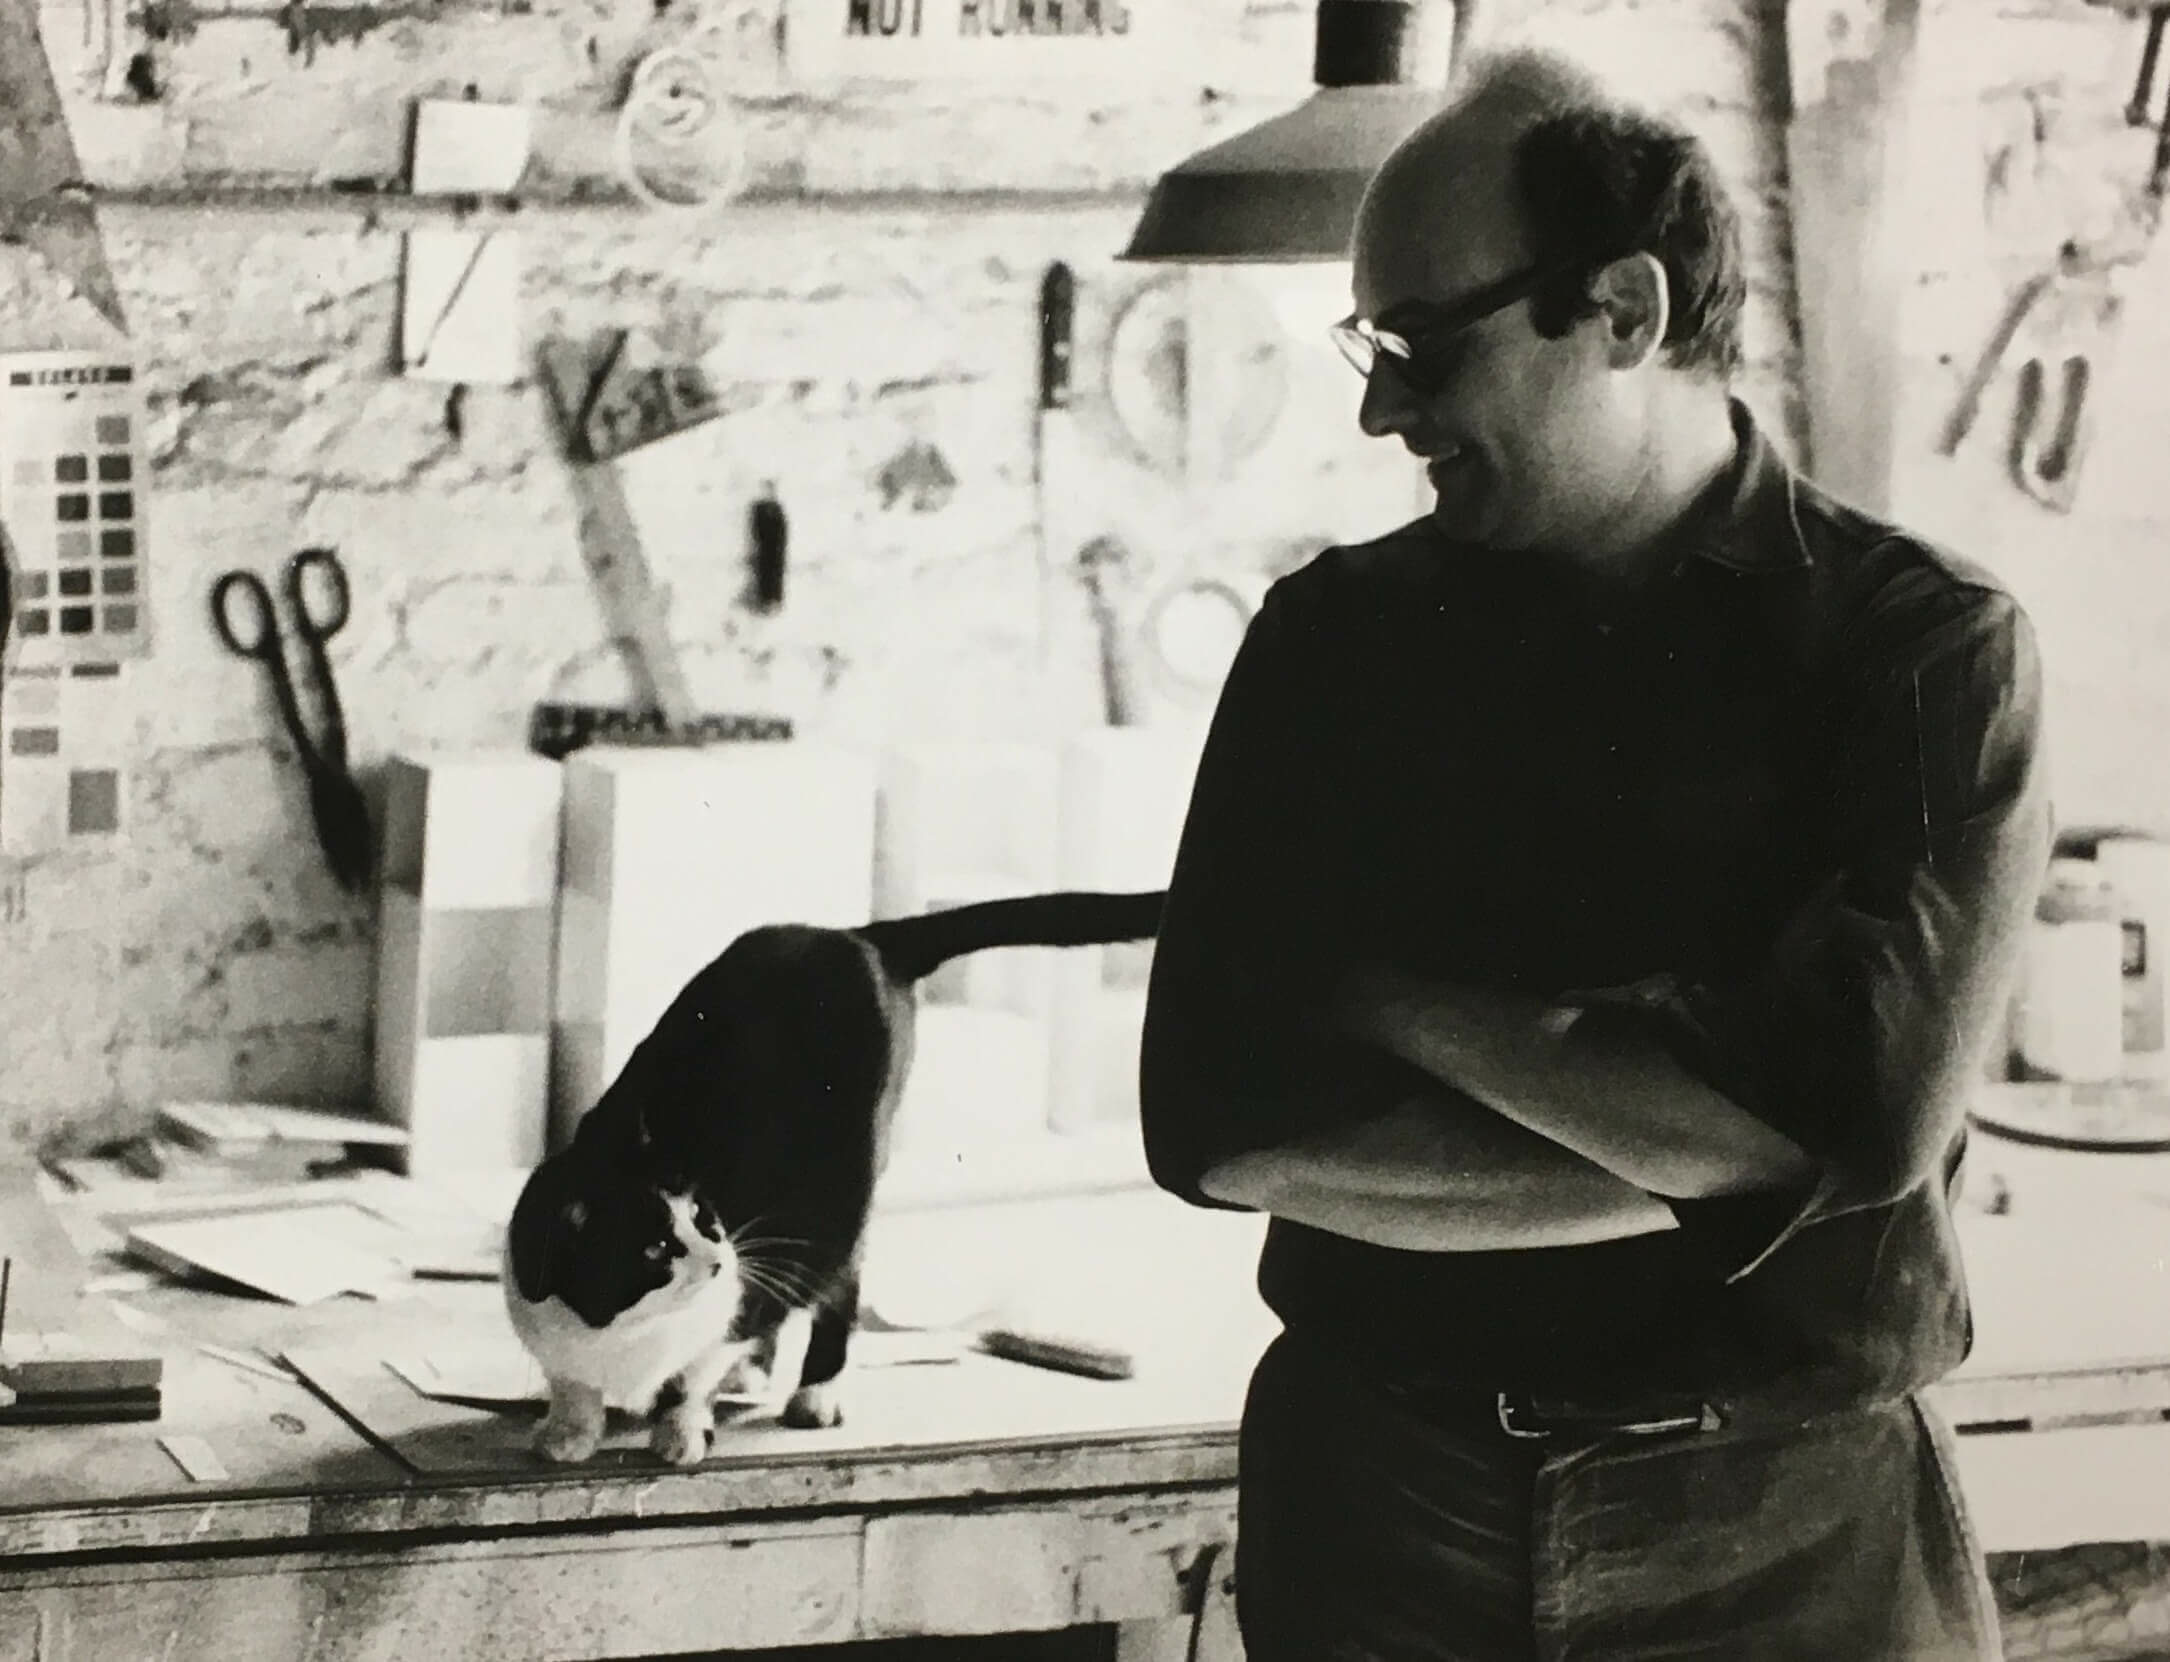 Artifex Press publishes Sol LeWitt Complete Writings and Sol LeWitt Interviews